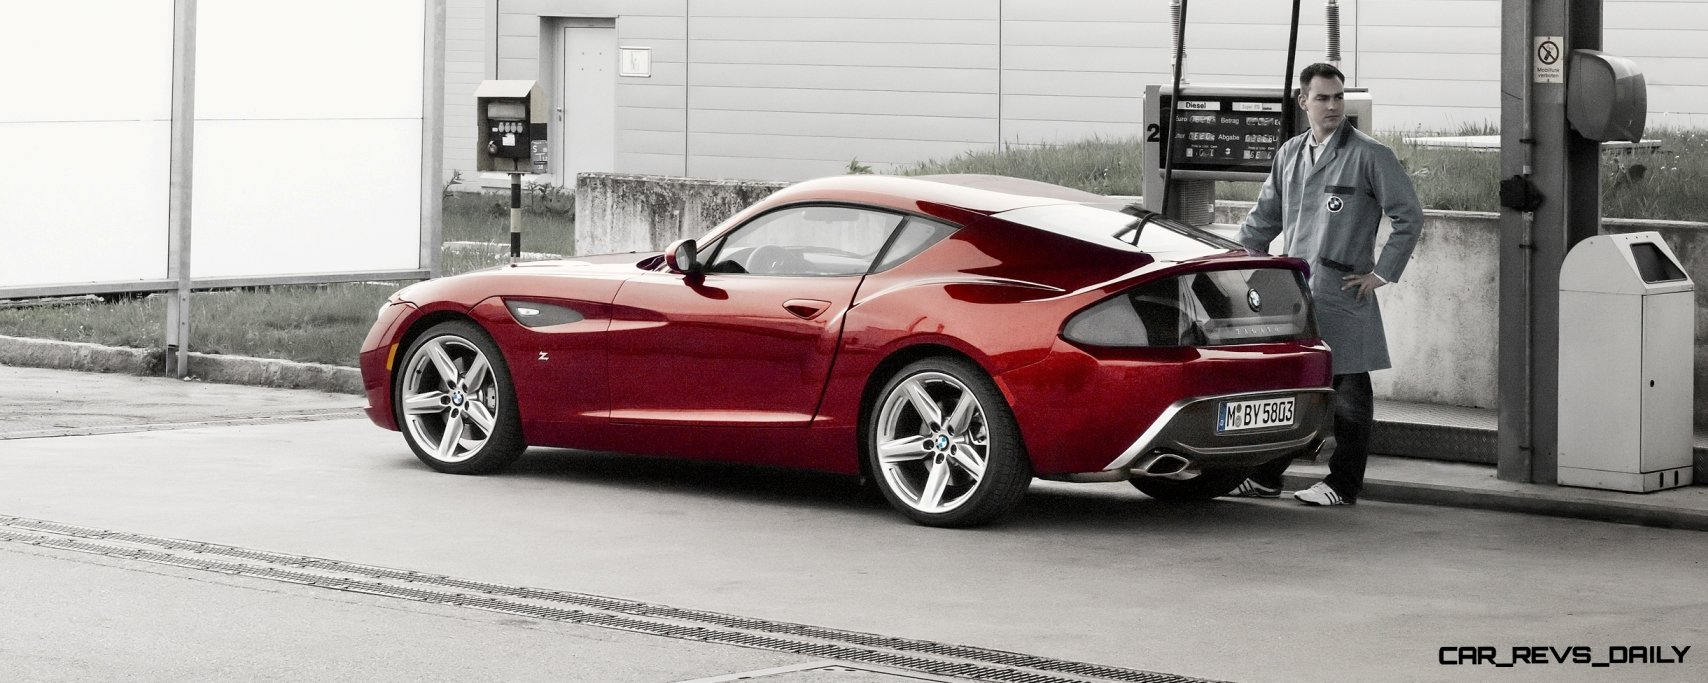 Concept Flashback - 2012 BMW Zagato Z4 Roadster and Coupe 3